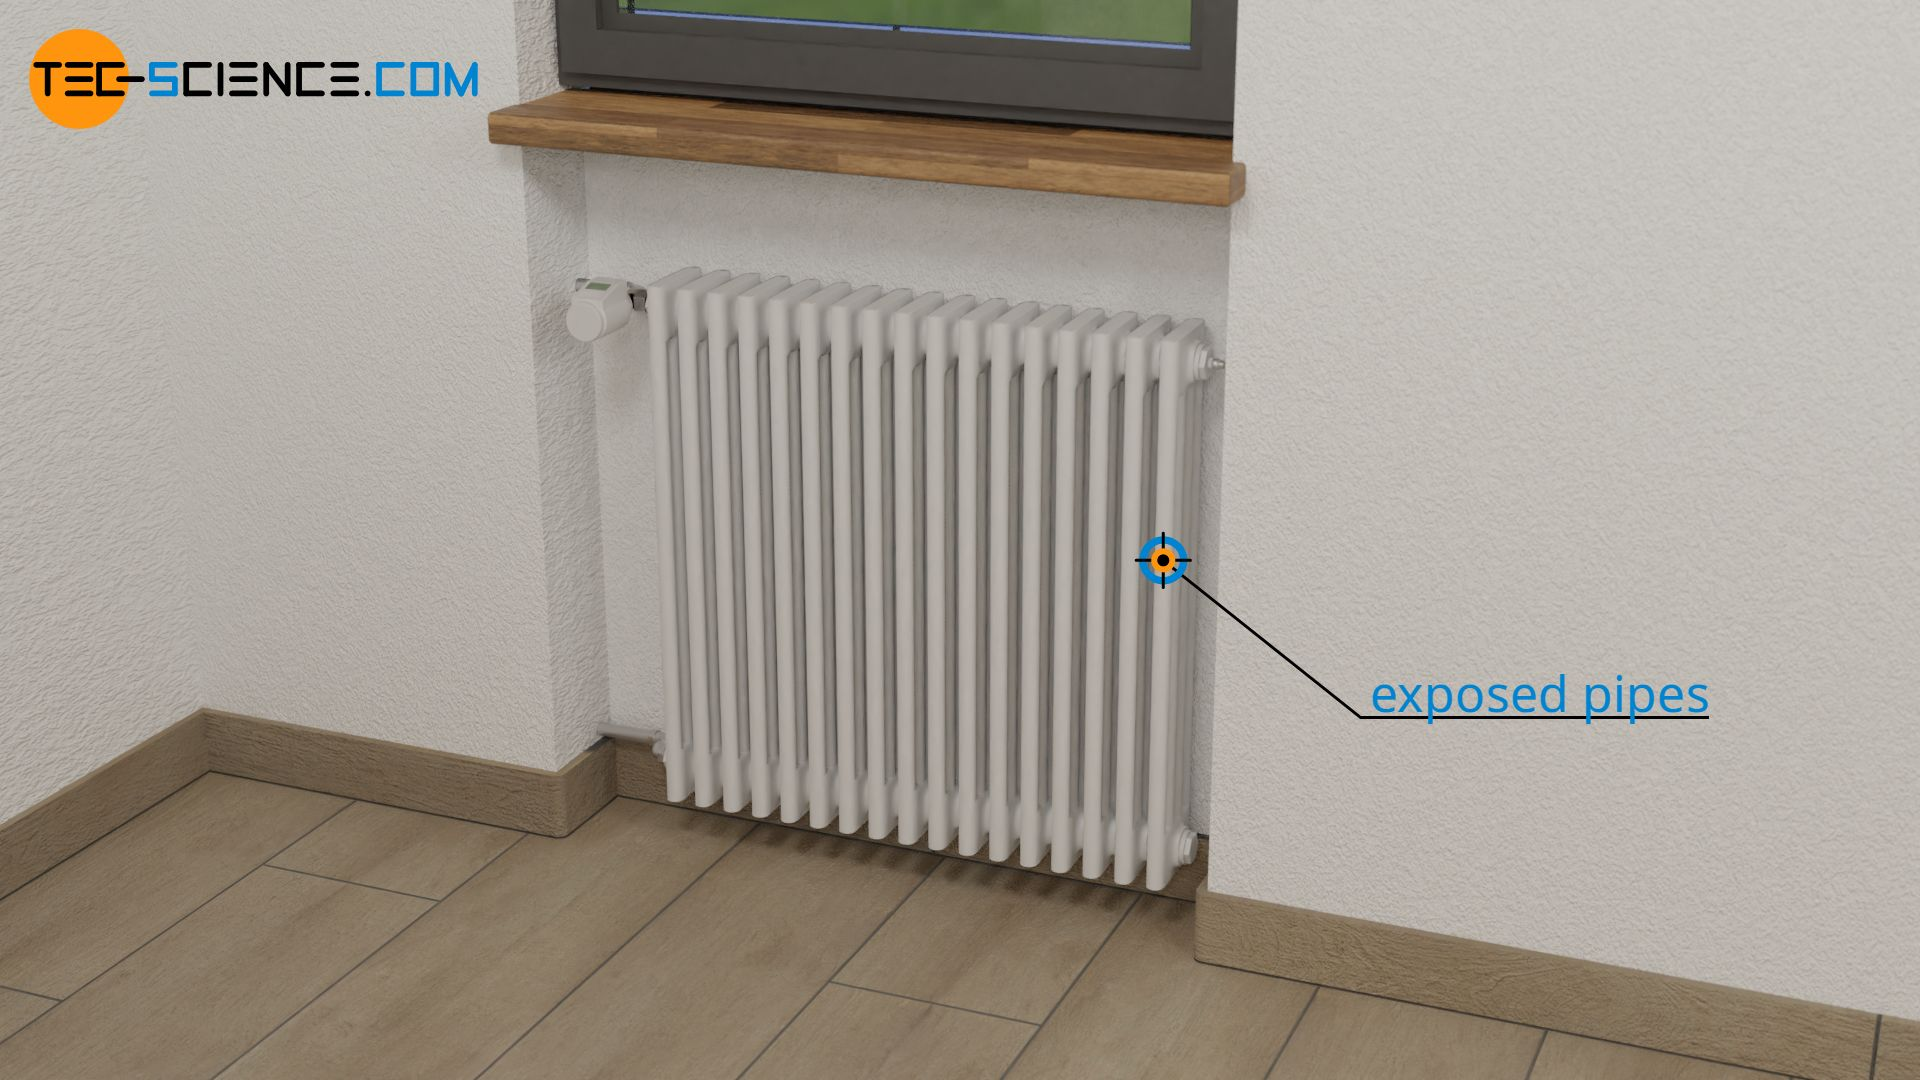 Cylindrical heating pipes of a radiator